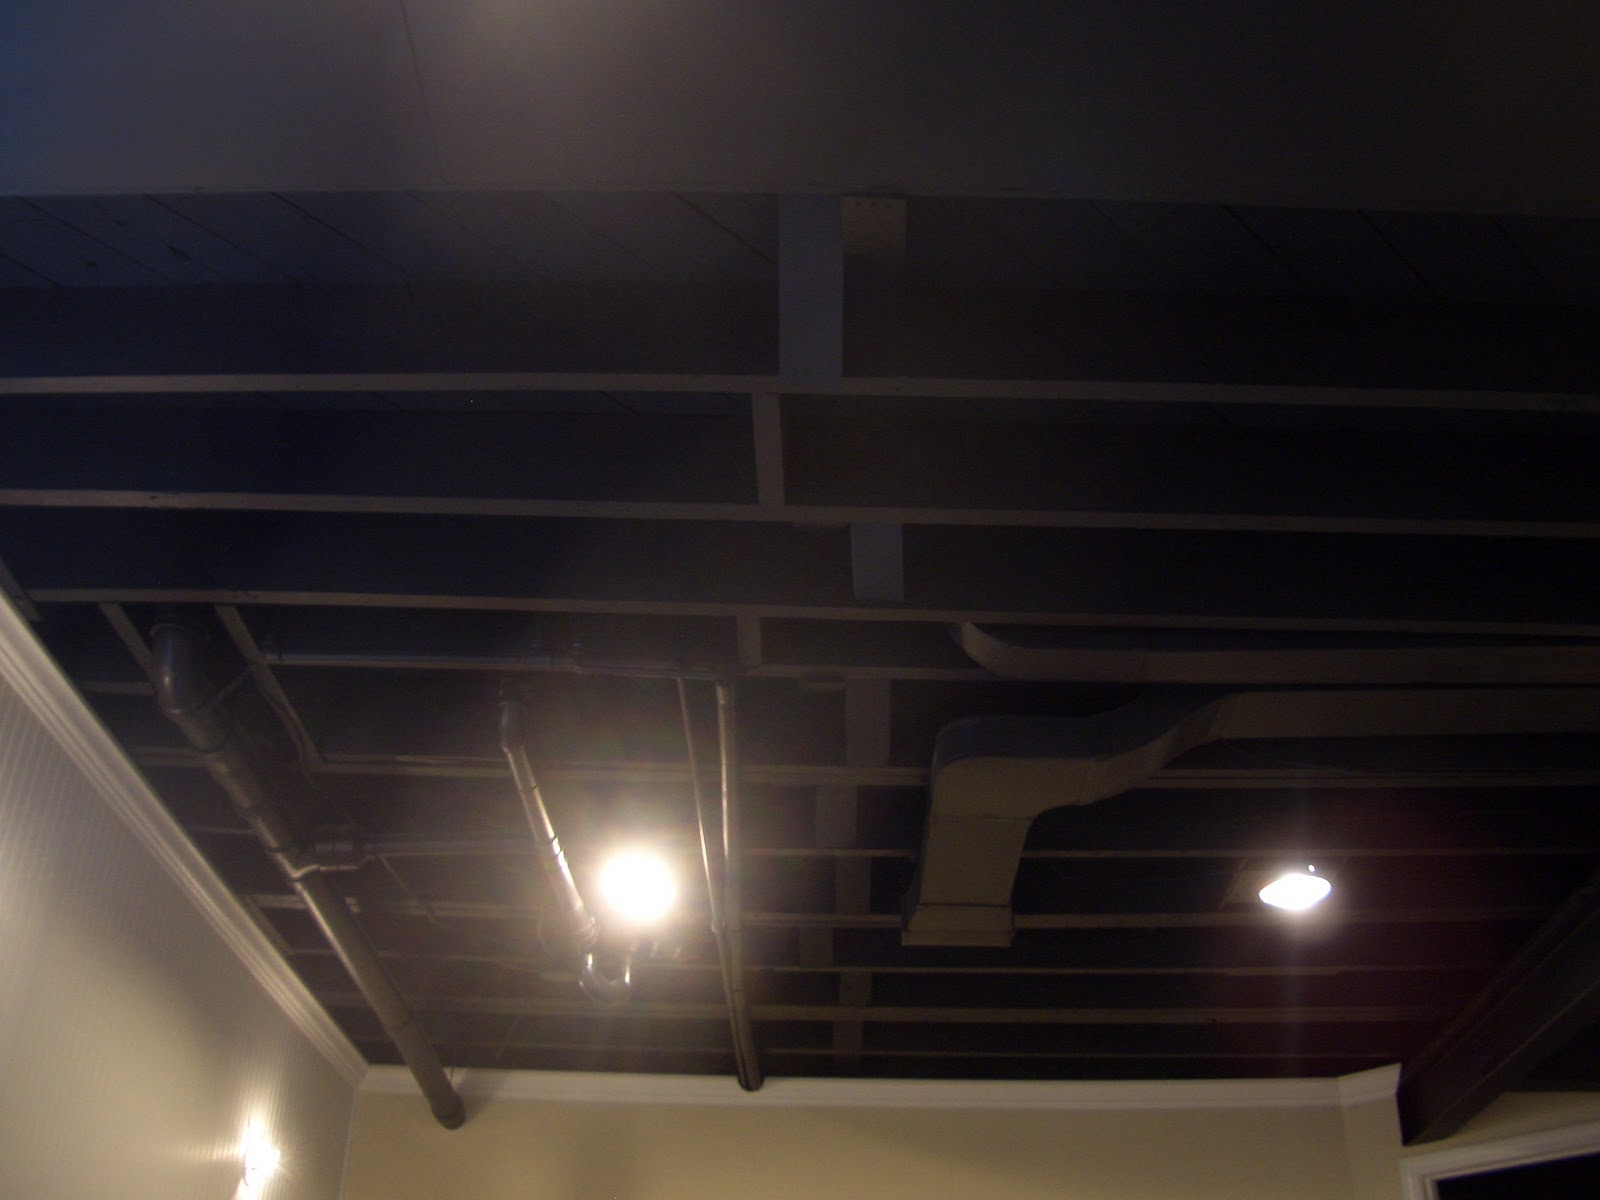 Http Gameroger Blogspot Com 2014 04 Exposed Basement Ceiling Html